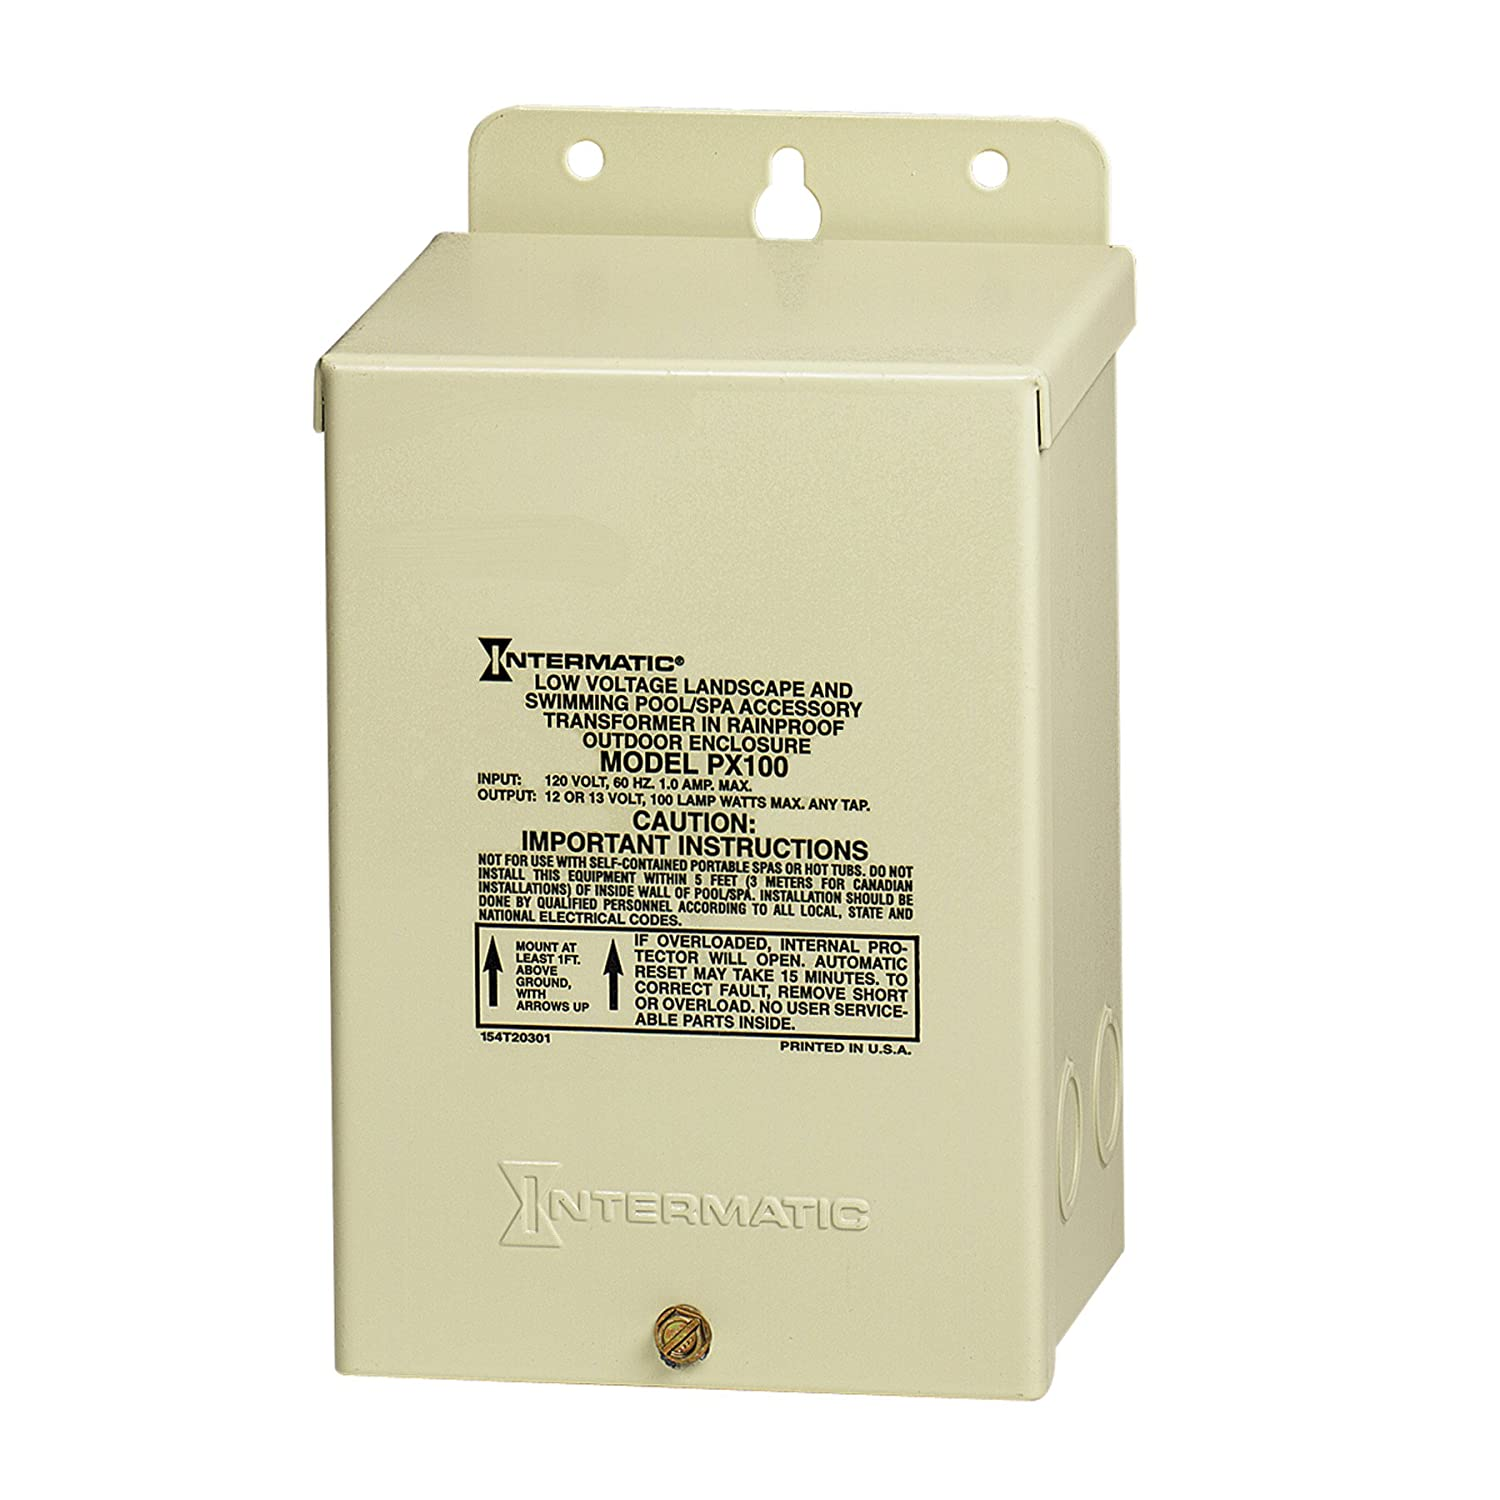 Amazon.com : Intermatic PX100 Pool Light 100-Watt Safety Transformer ...